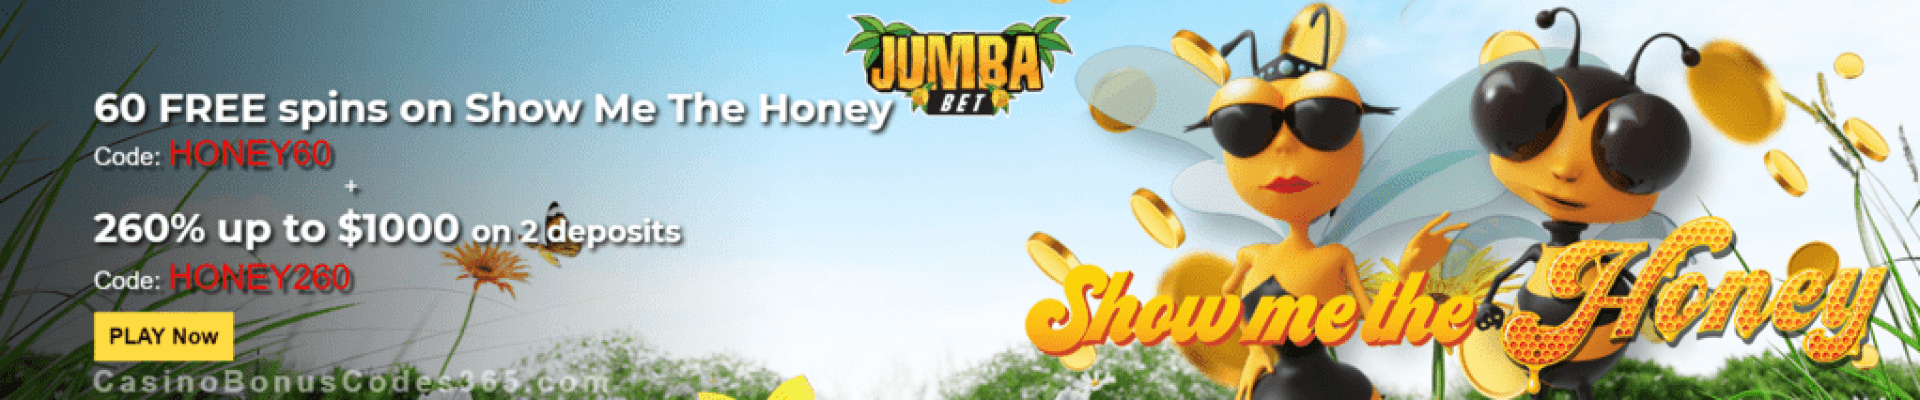 Jumba Bet 60 FREE Show me the Honey Spins plus 260% Match Special Promo Saucify